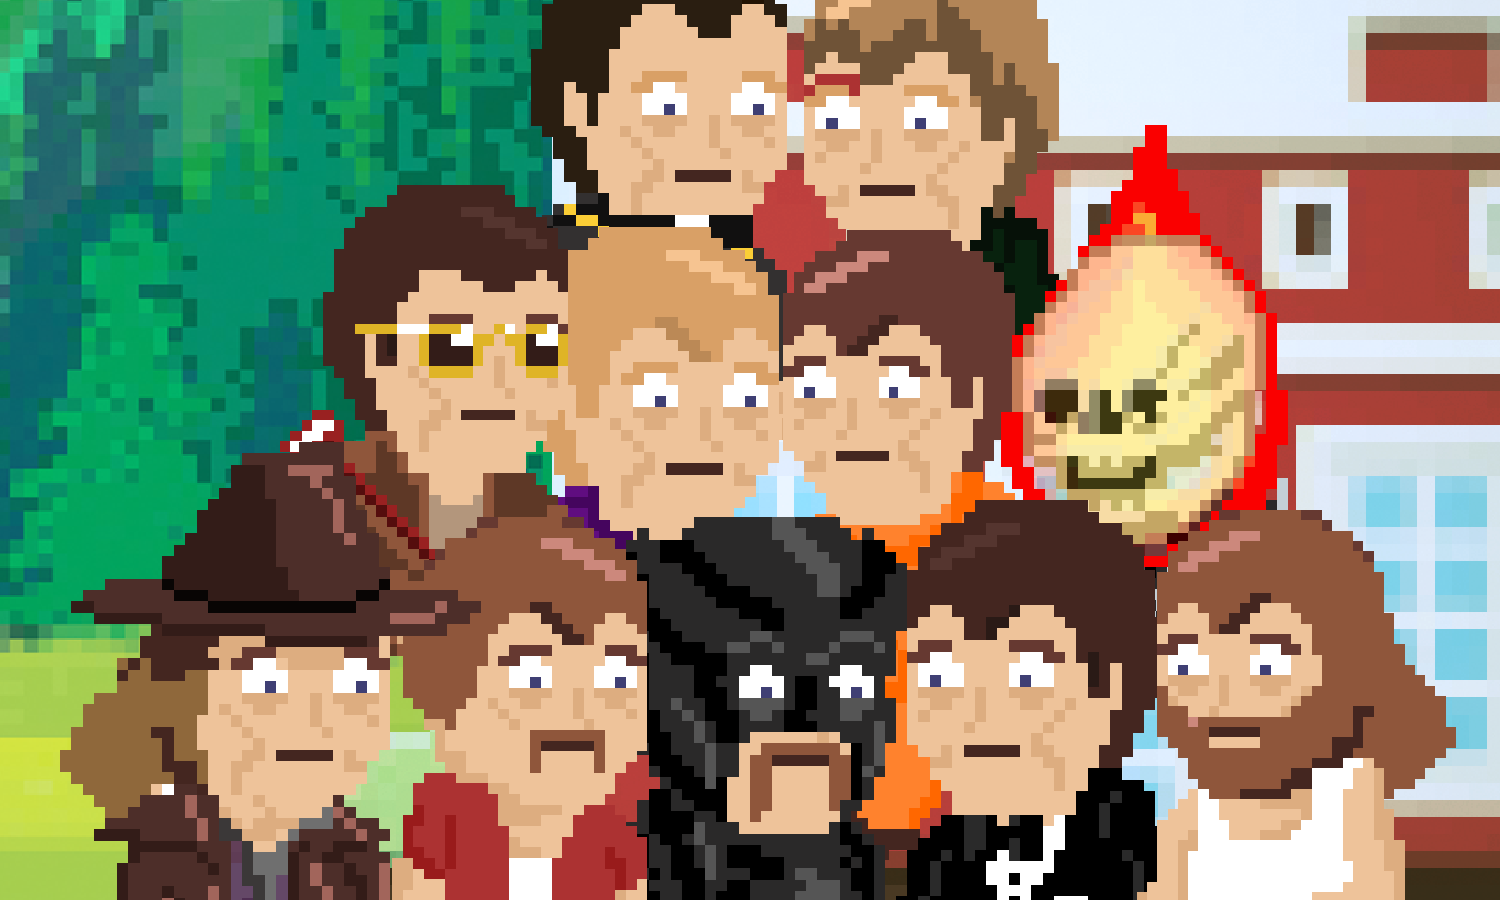 Team photo of avatars of each person who helped out with project